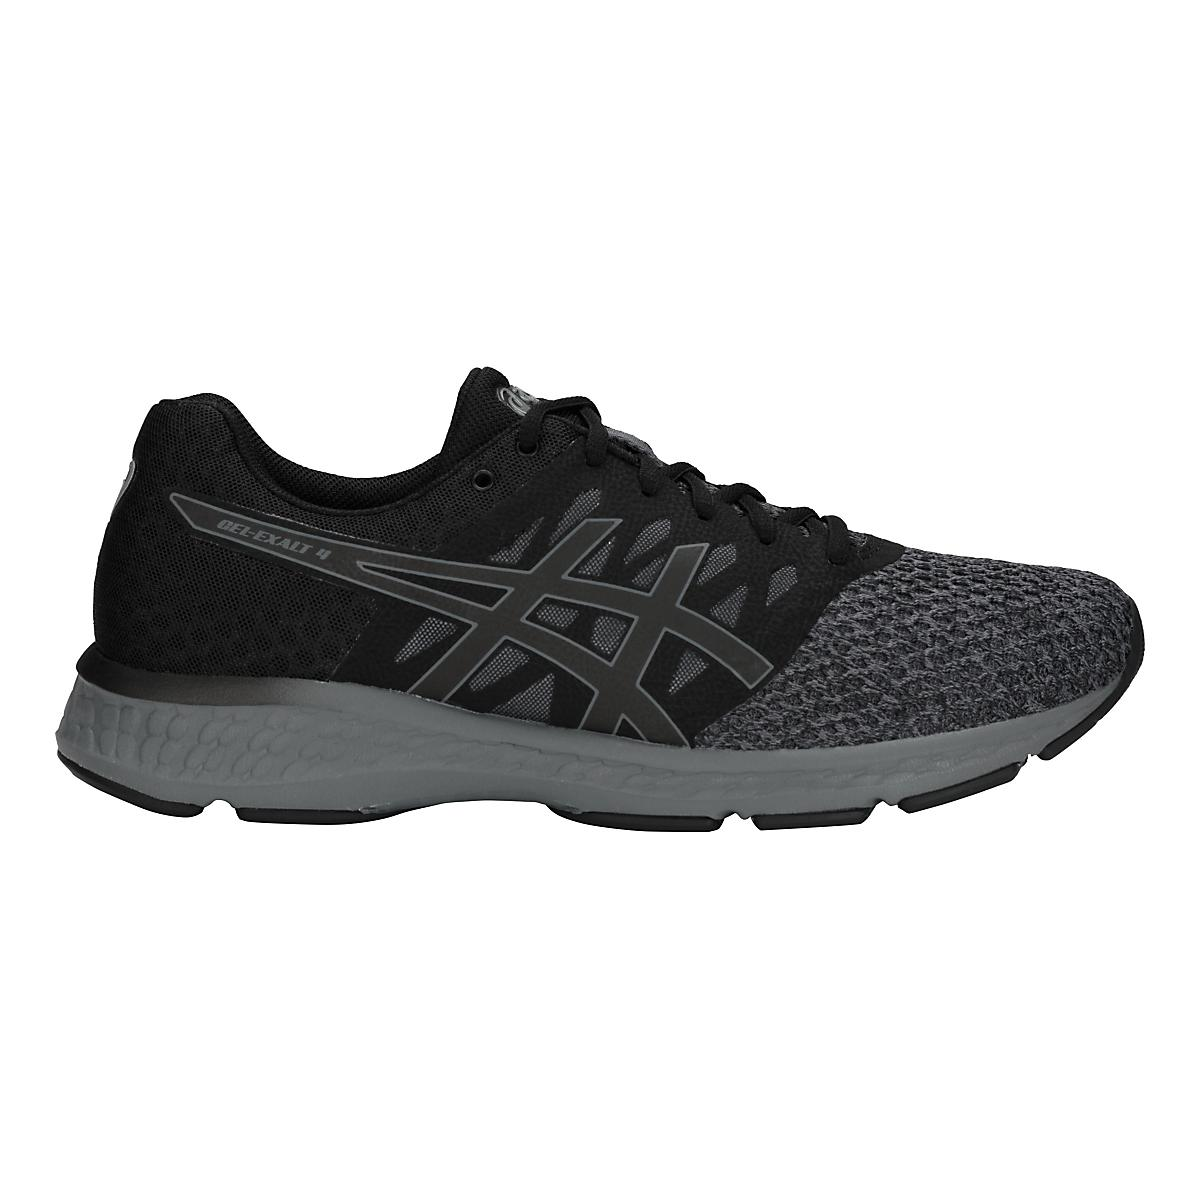 Lírico emergencia tierra principal  Mens ASICS GEL-Exalt 4 Running Shoe at Road Runner Sports